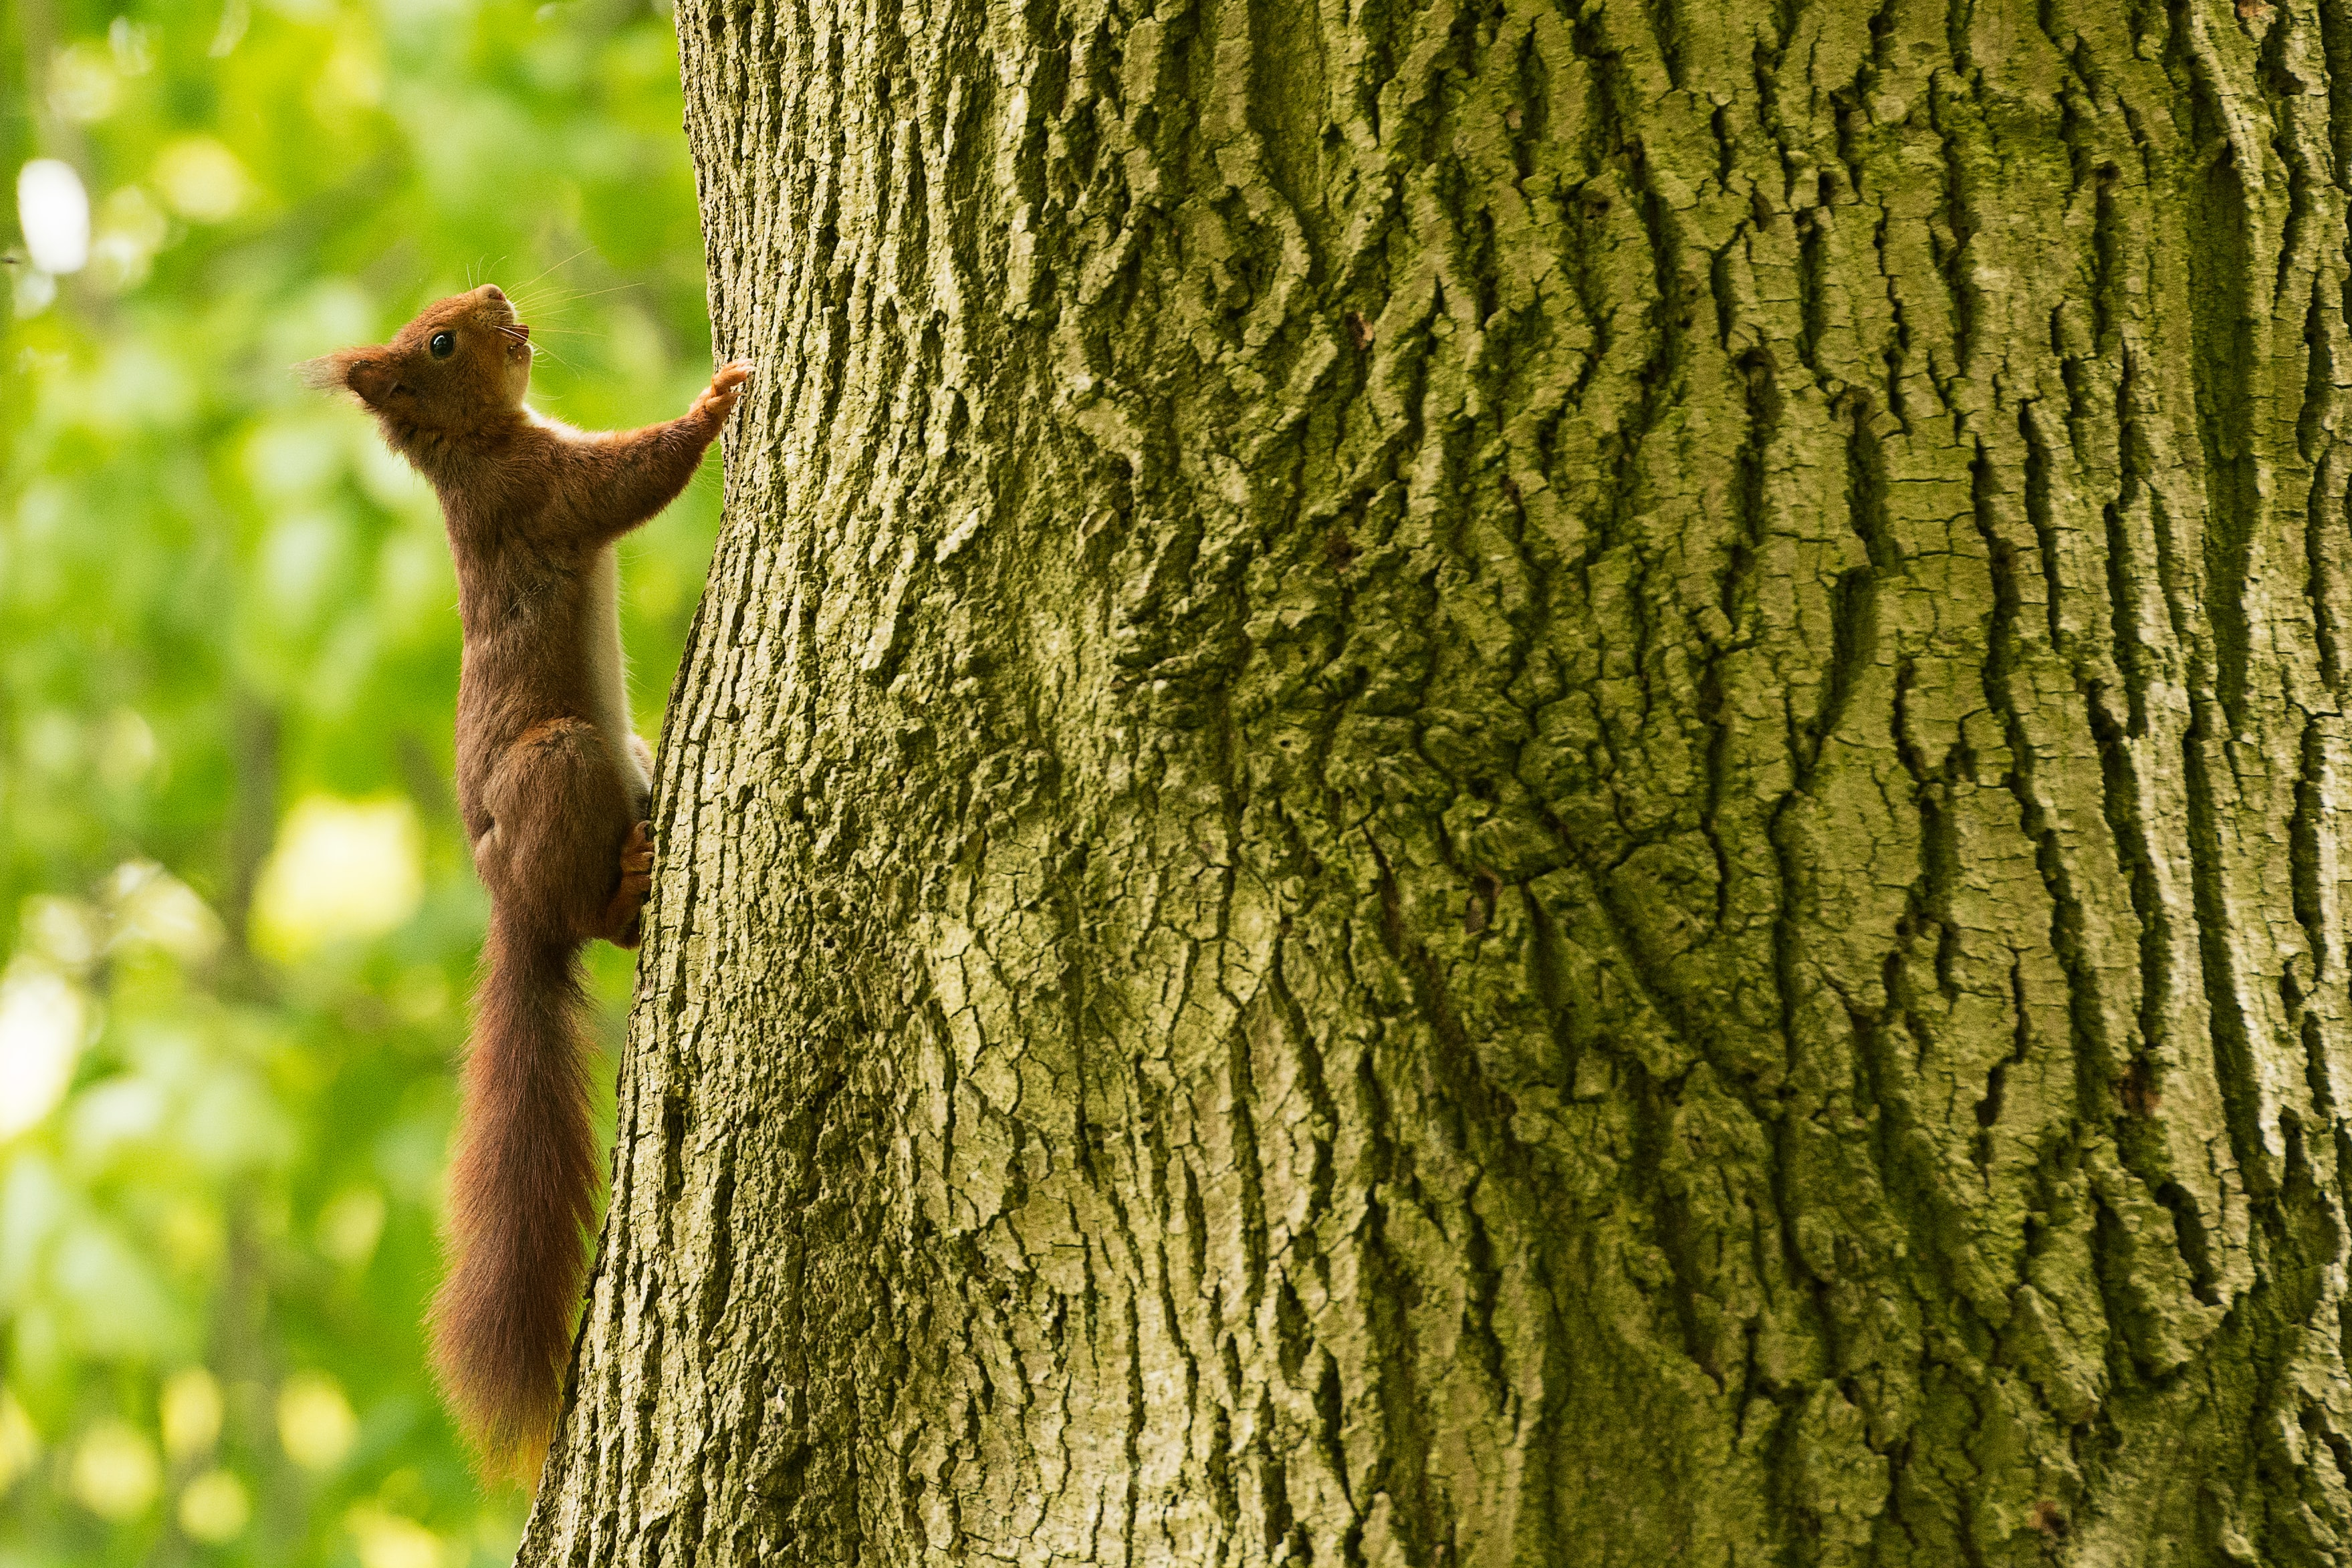 brown squirrel climbing on bark of tree